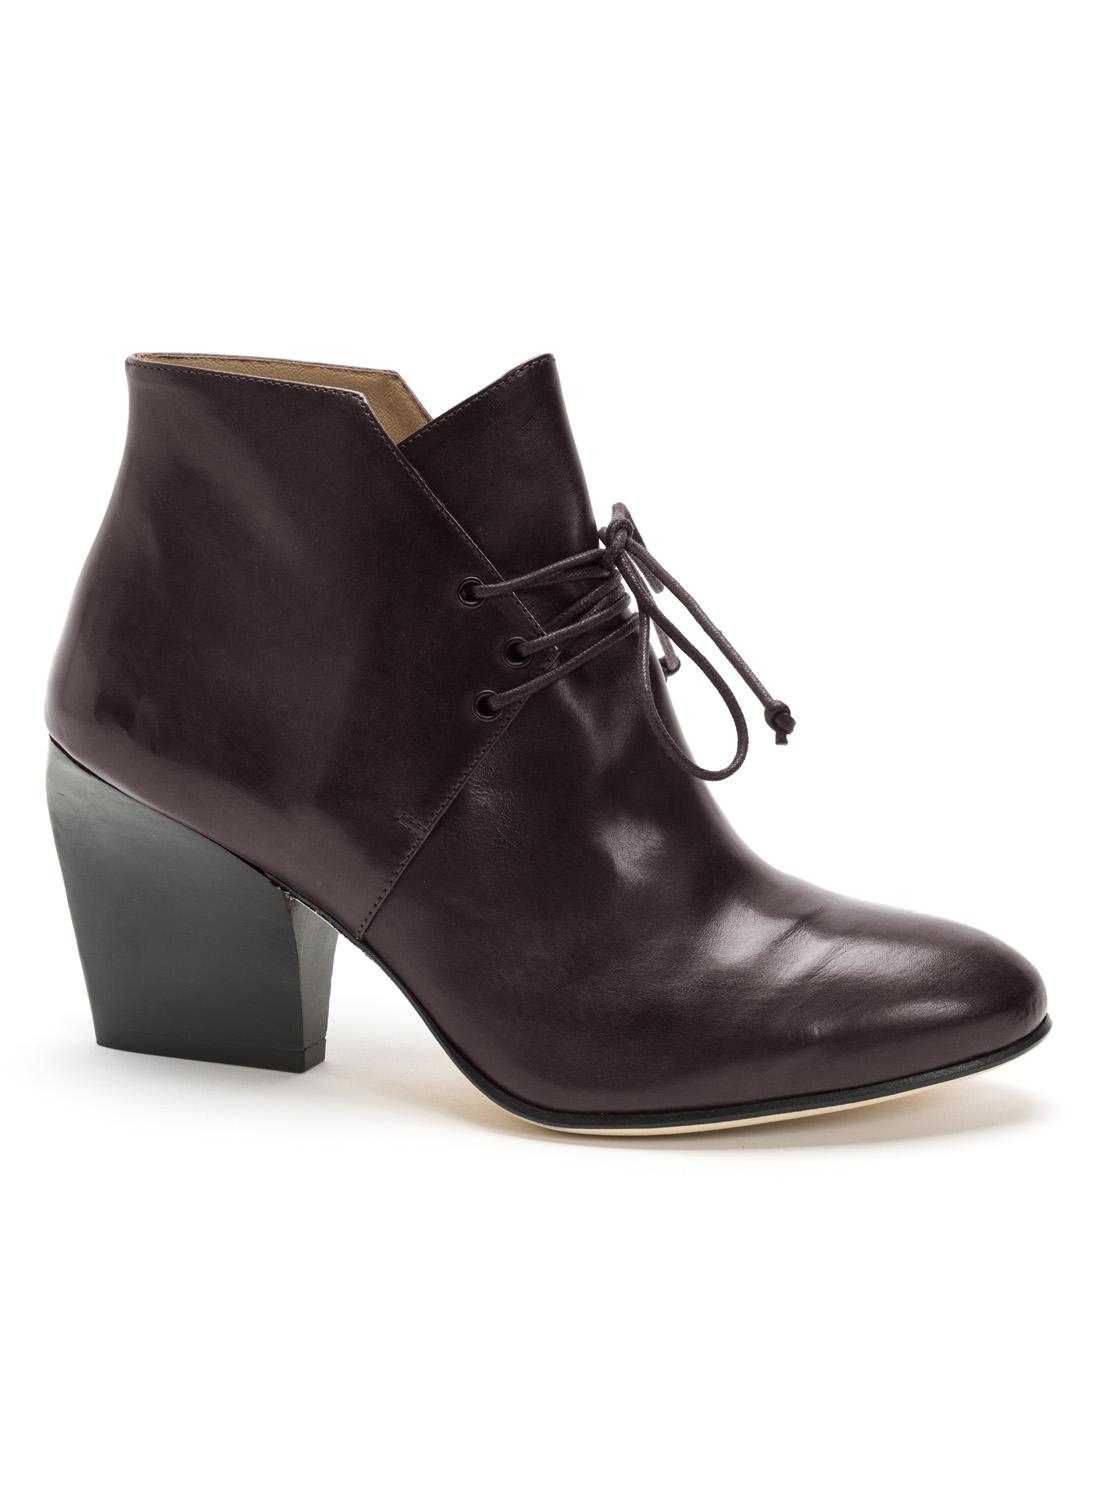 atalanta weller burgundy leather tie up ankle boot in